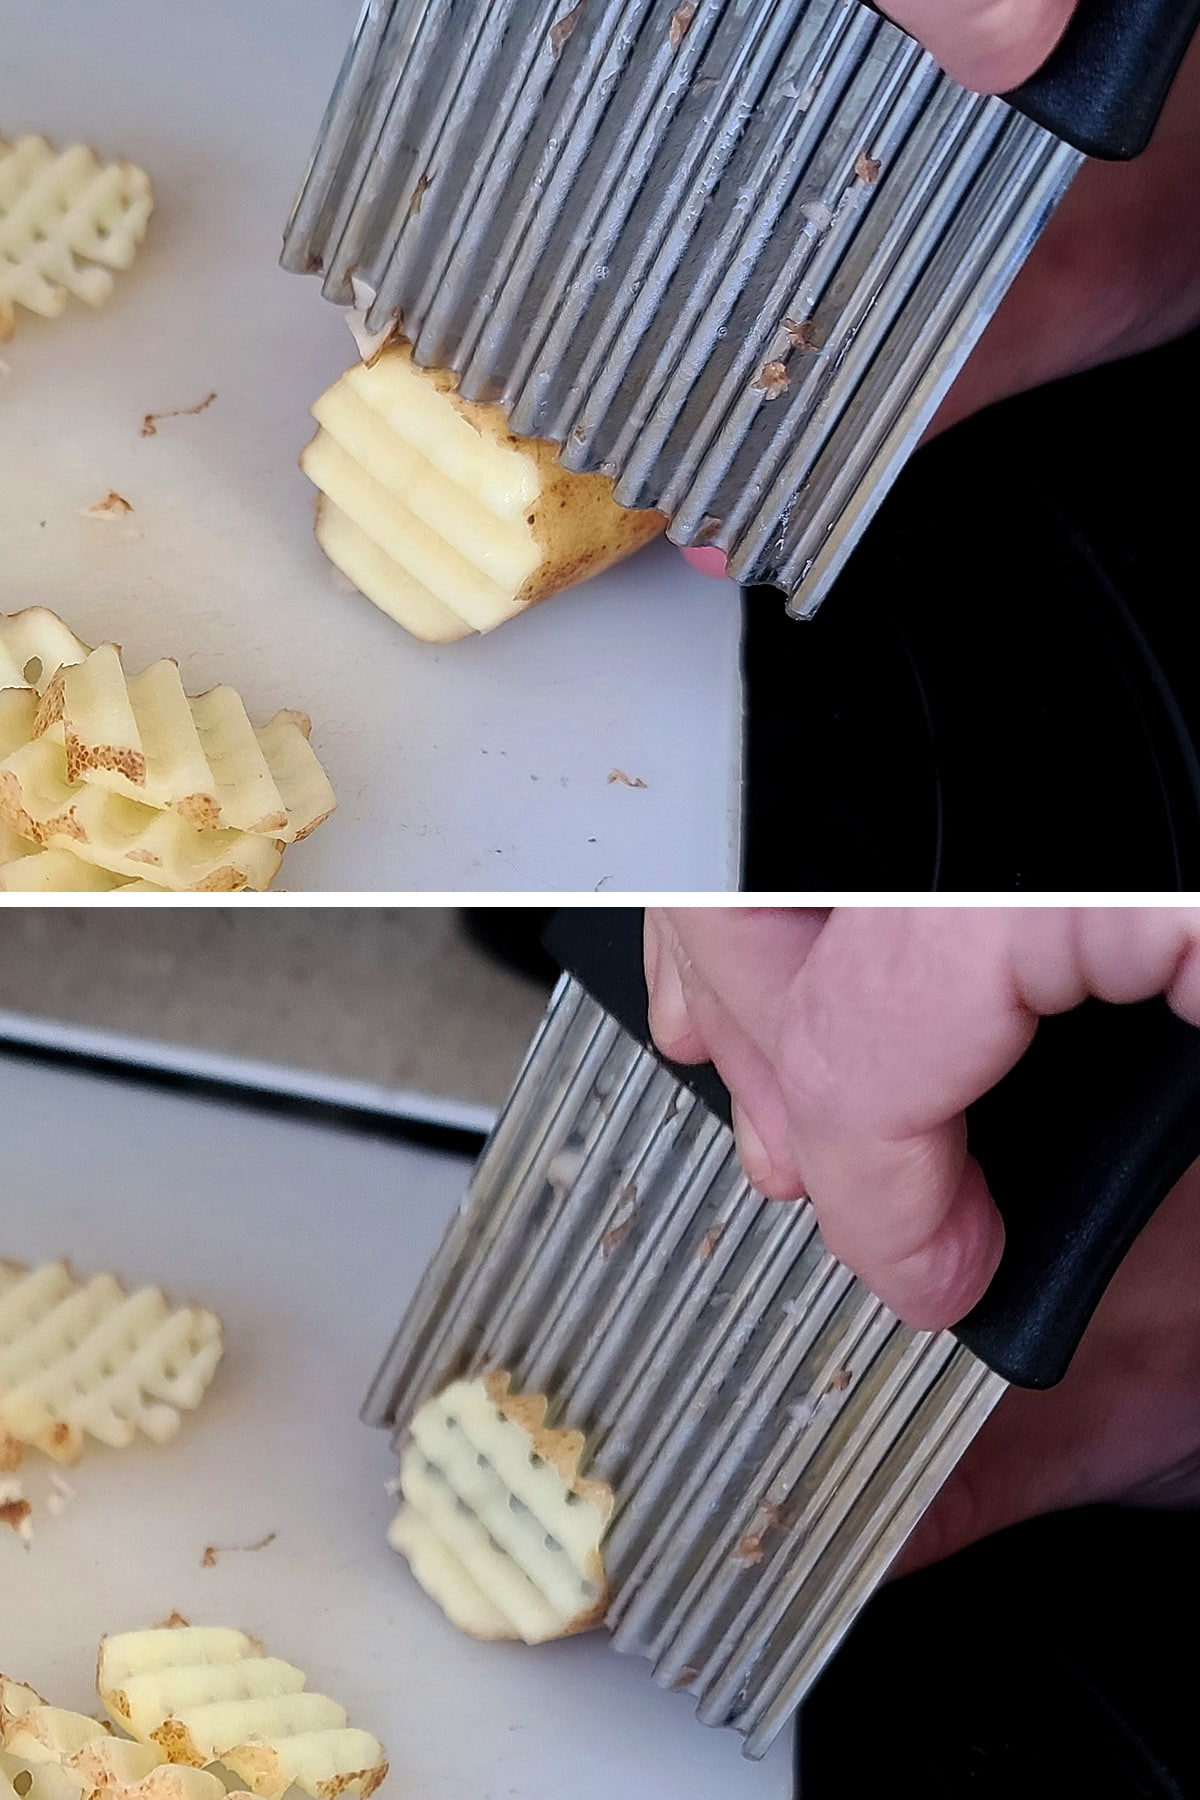 A two part compilation image showing a potato being cut with a crinkle cut knife.